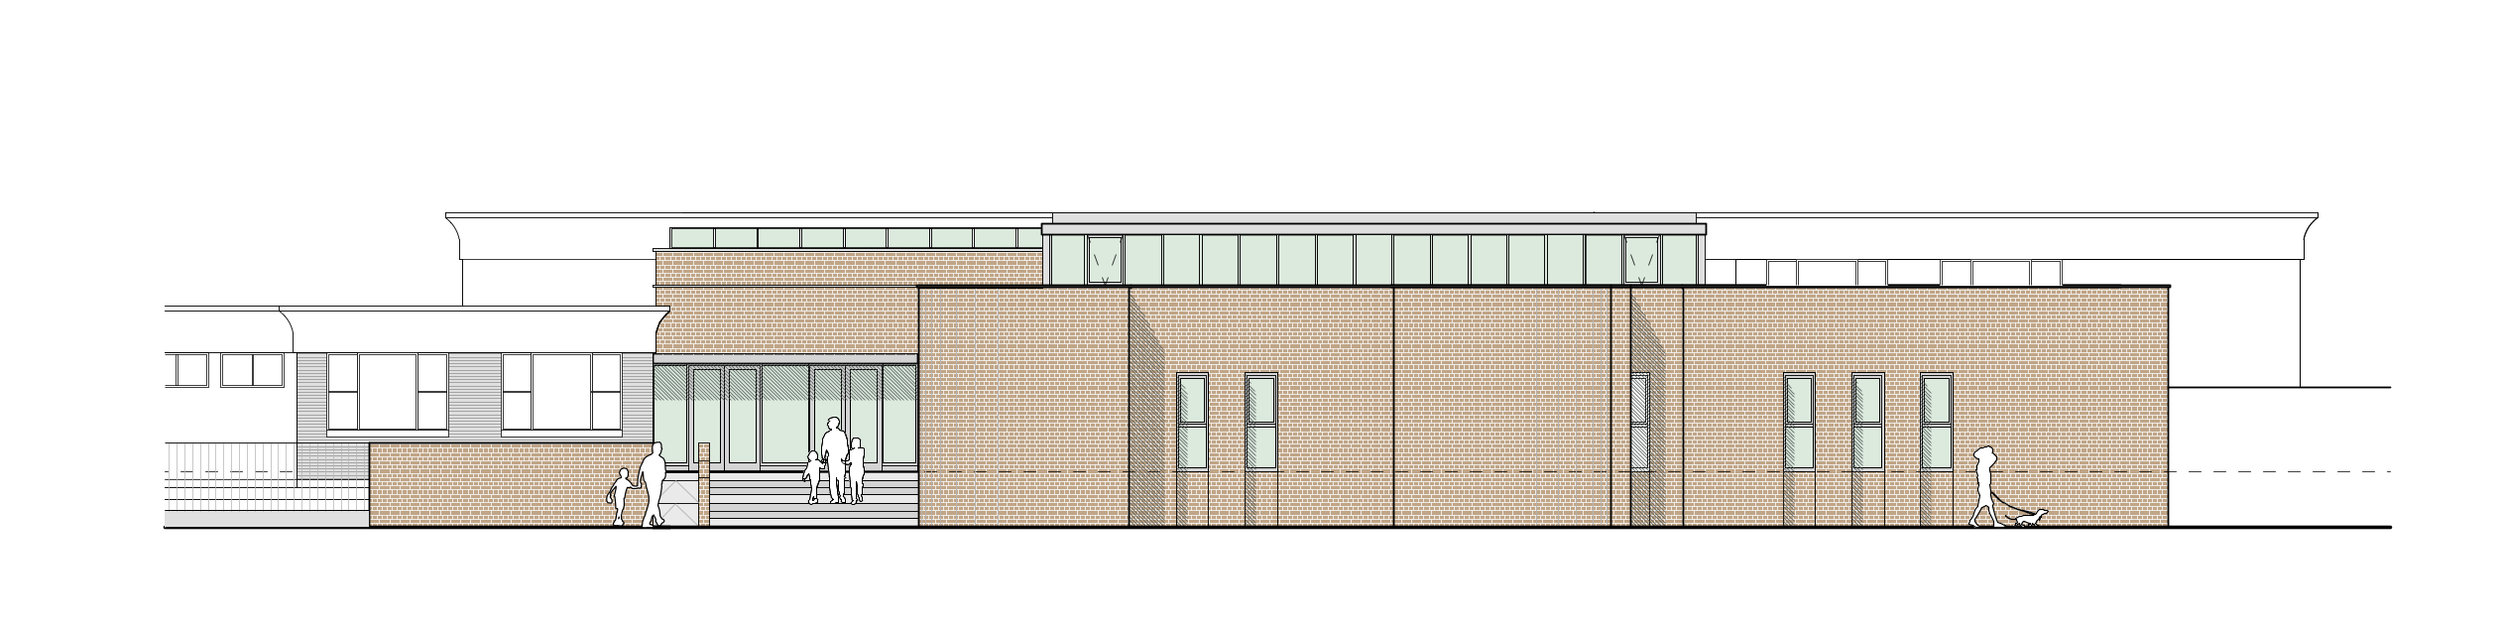 Streetfront elevation